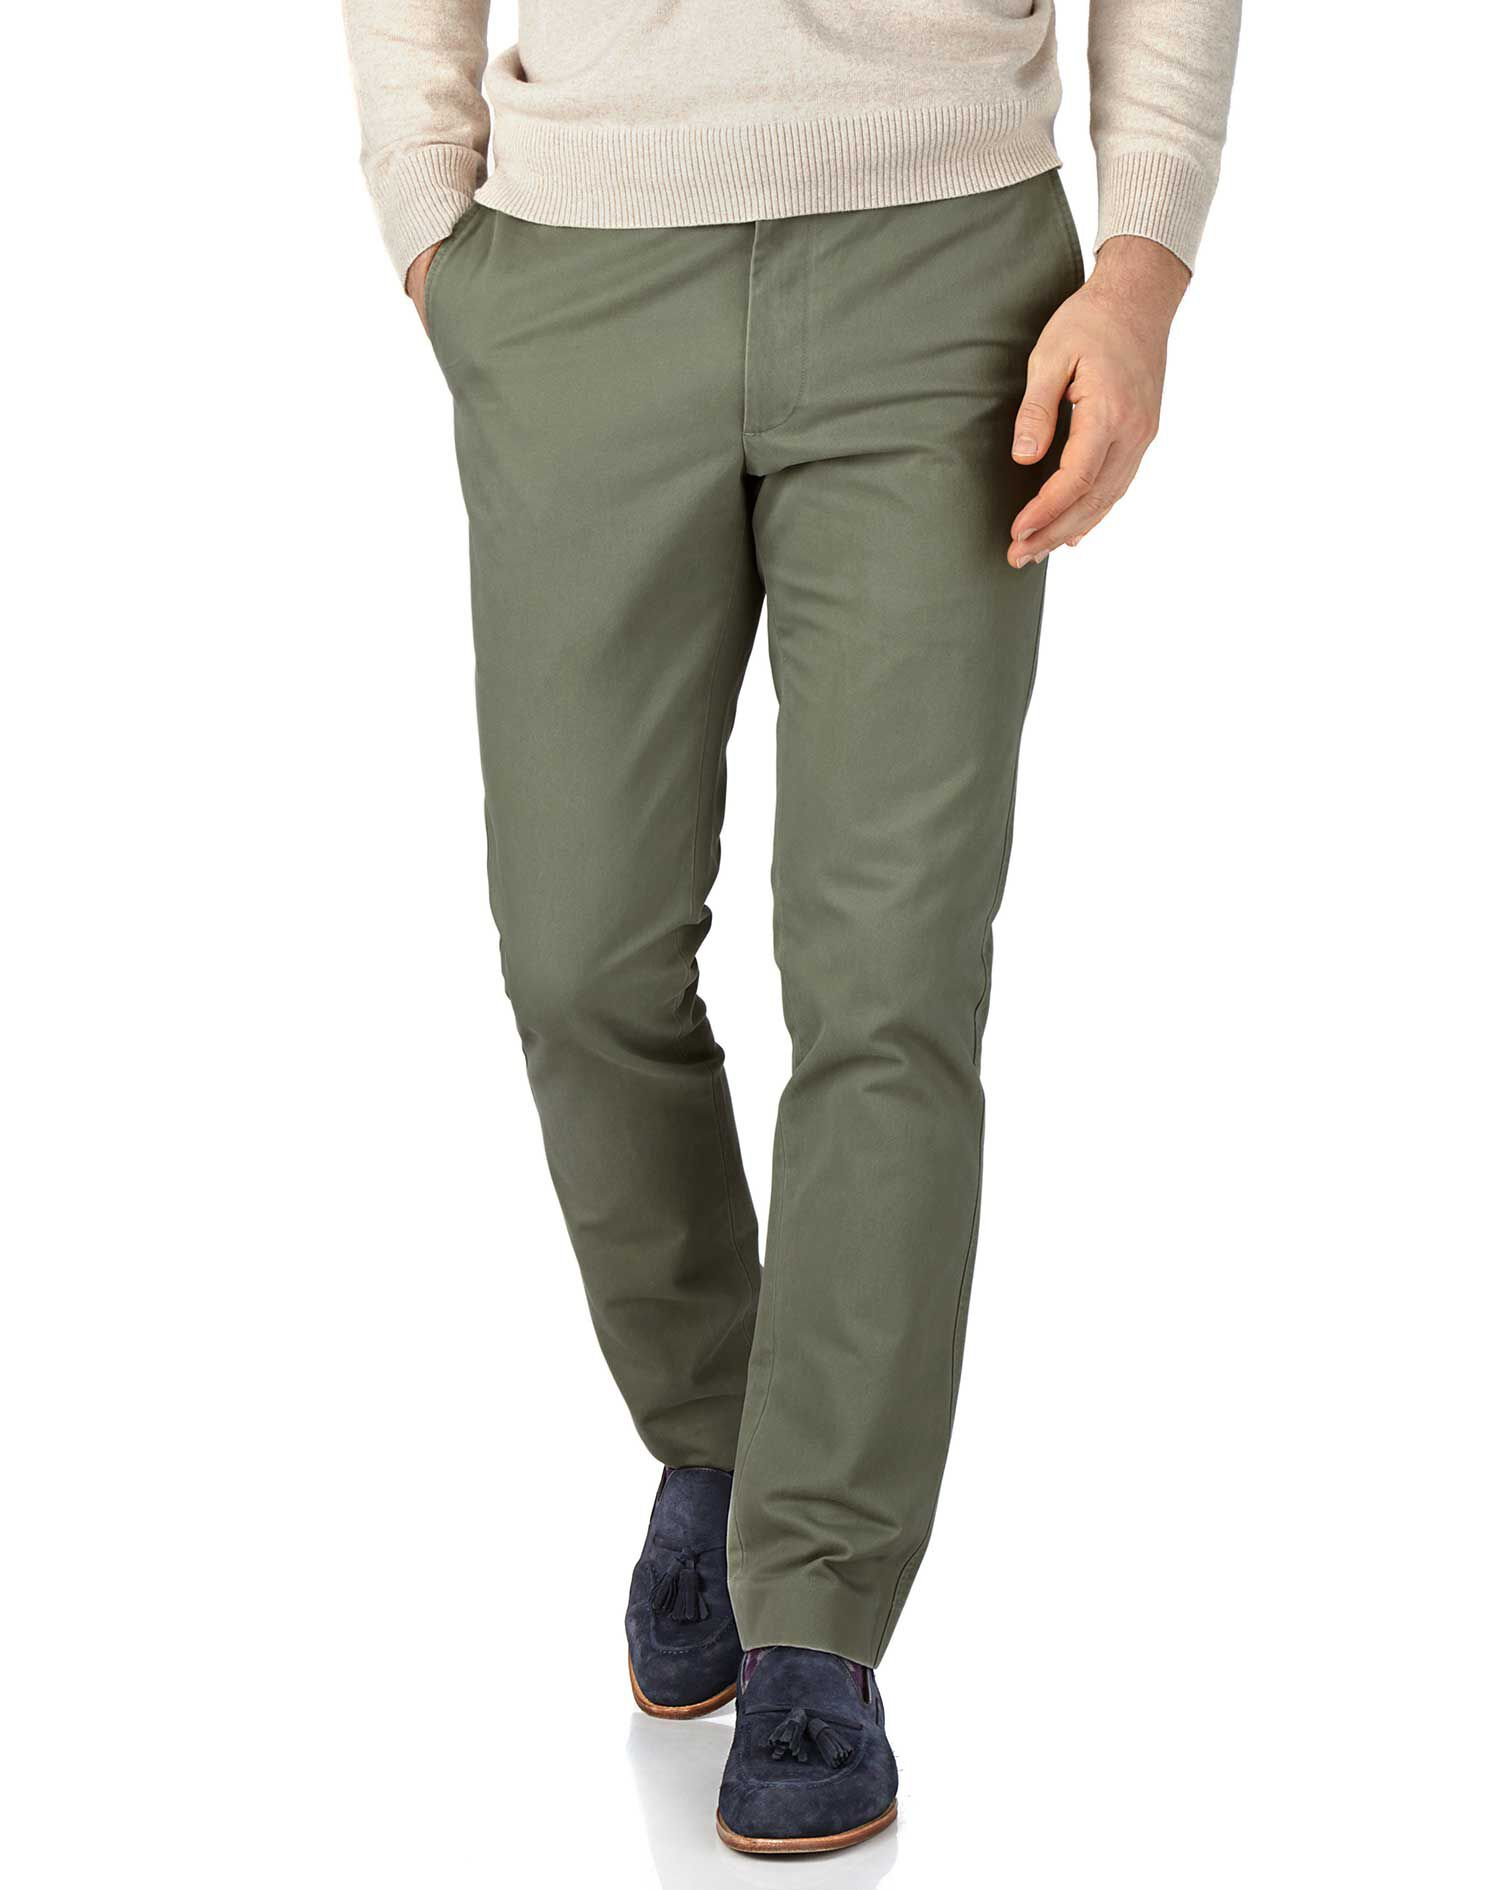 Light Green Extra Slim Fit Flat Front Cotton Chino Trousers Size W34 L29 by Charles Tyrwhitt